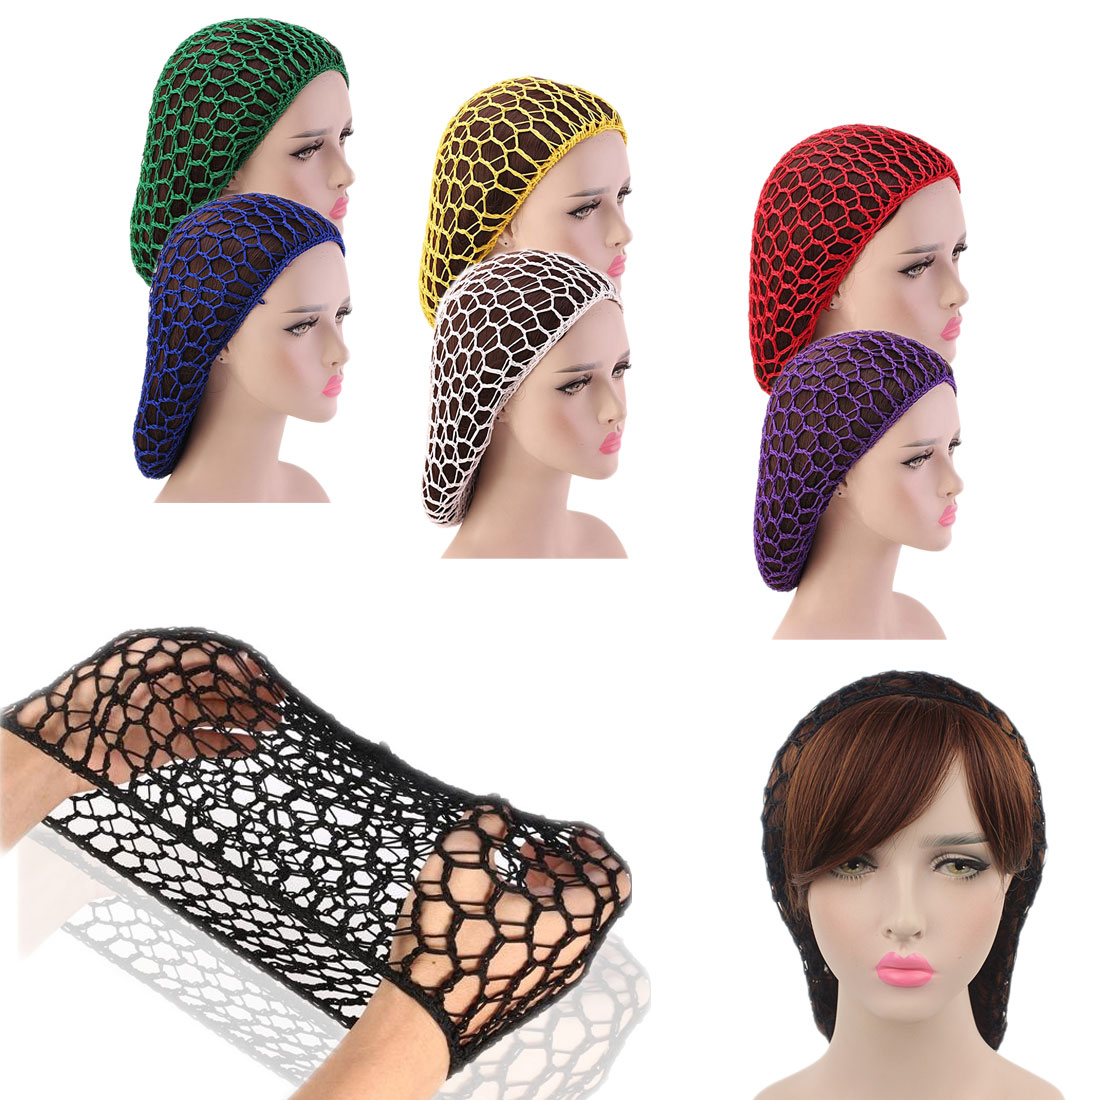 Styling tools Hair Net Bands Snood Cover Rayon Net Hair Net Hair Accessories to Sleeping Crochet Hairnet to Women Lady Styling tools Hair Net Bands Snood Cover Rayon Net Hair Net Hair Accessories to Sleeping Crochet Hairnet to Women Lady